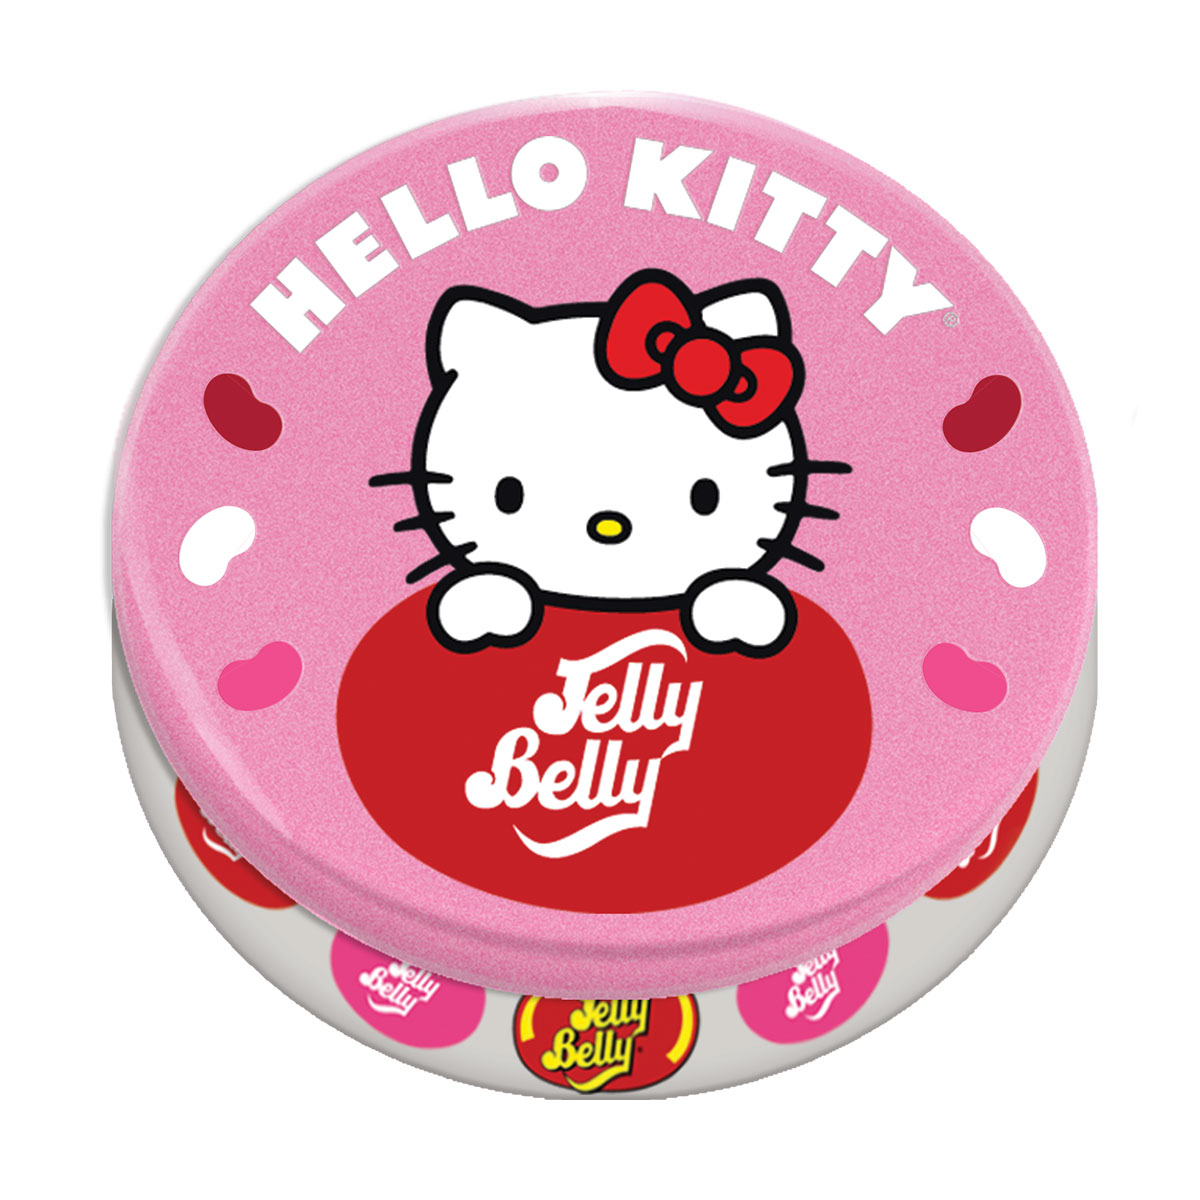 Hello Kitty® Favorite Flavors Jelly Beans Tin - 1.5 oz